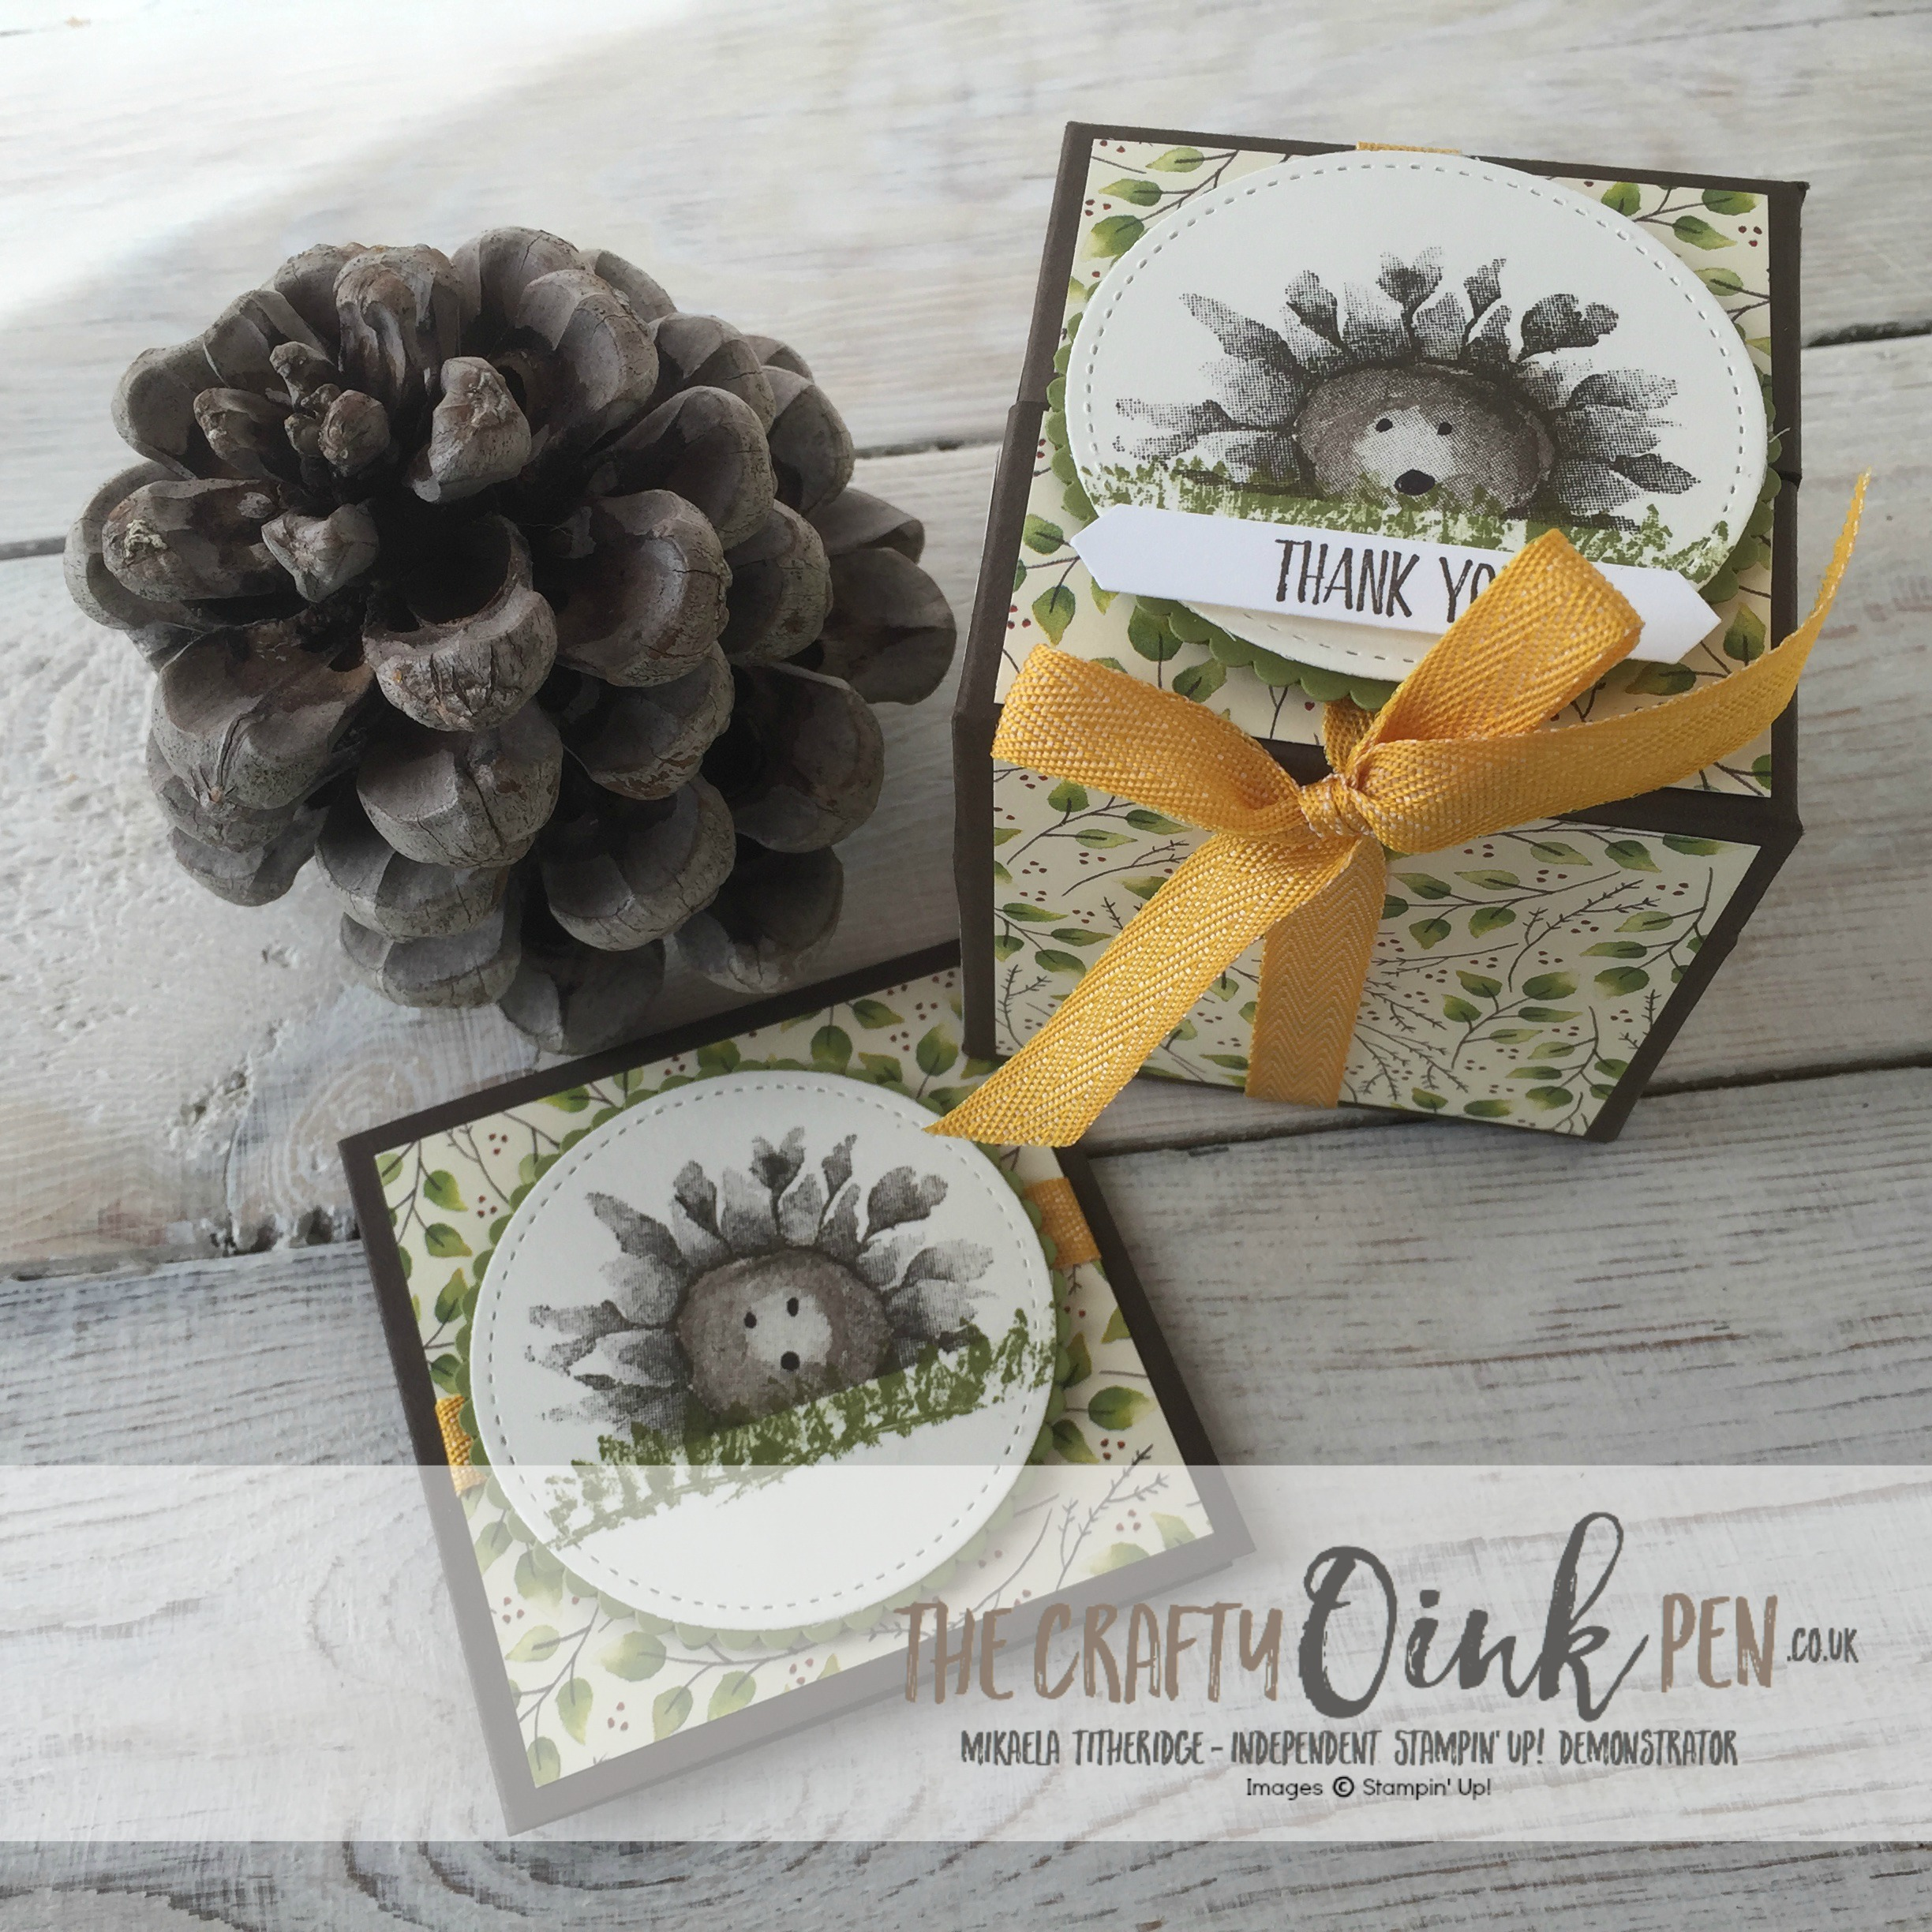 Stamping Harvest Painted Harvest Suite Hedgehog Box by Mikaela Titheridge, Independent Stampin' Up! Demonstrator, The Crafty oINK Pen